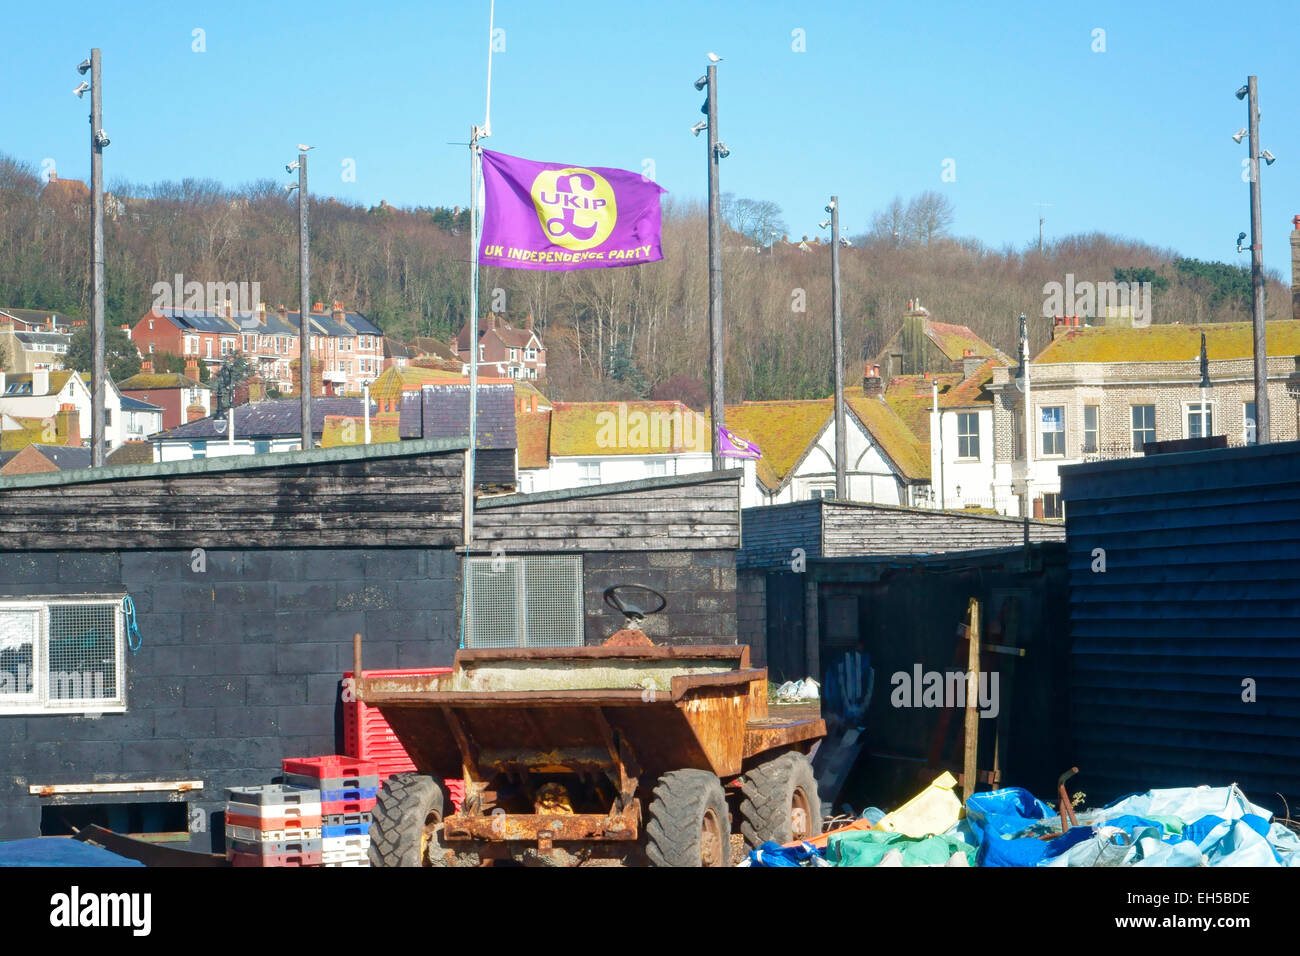 UKIP flag flying over Hastings Old Town Stade East Sussex England - Stock Image